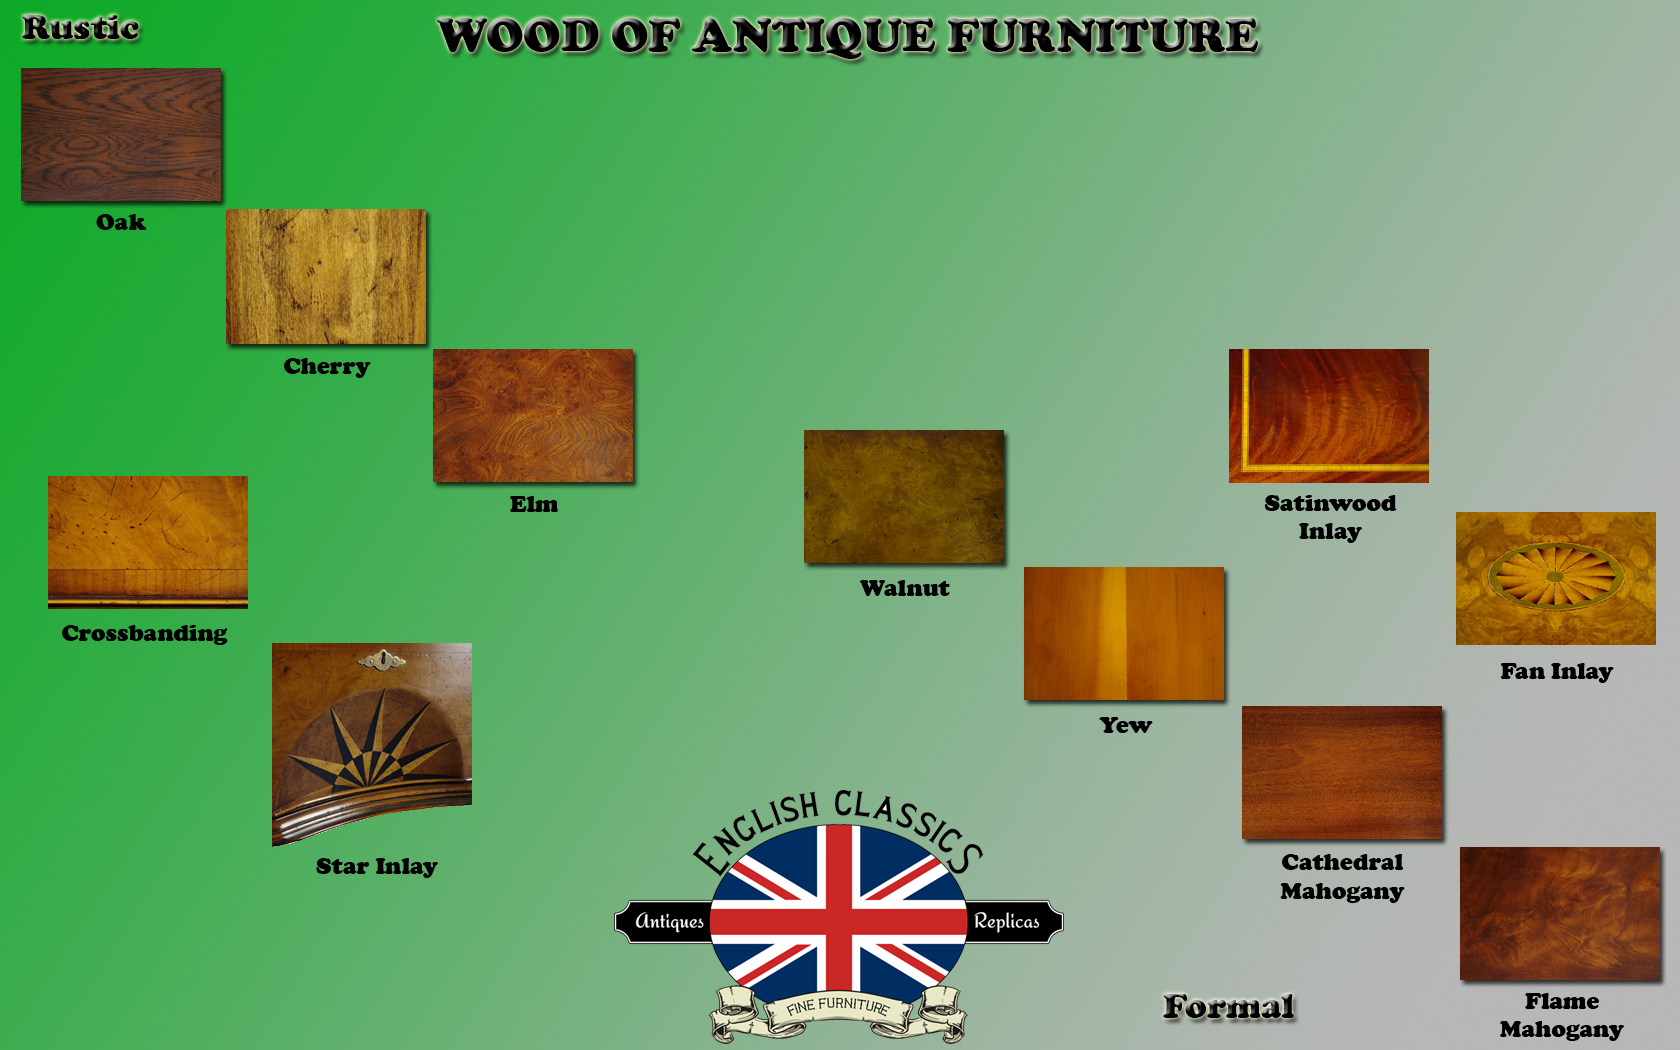 We have put together a handy infographic here to help distinguish the wood types of different antique furniture